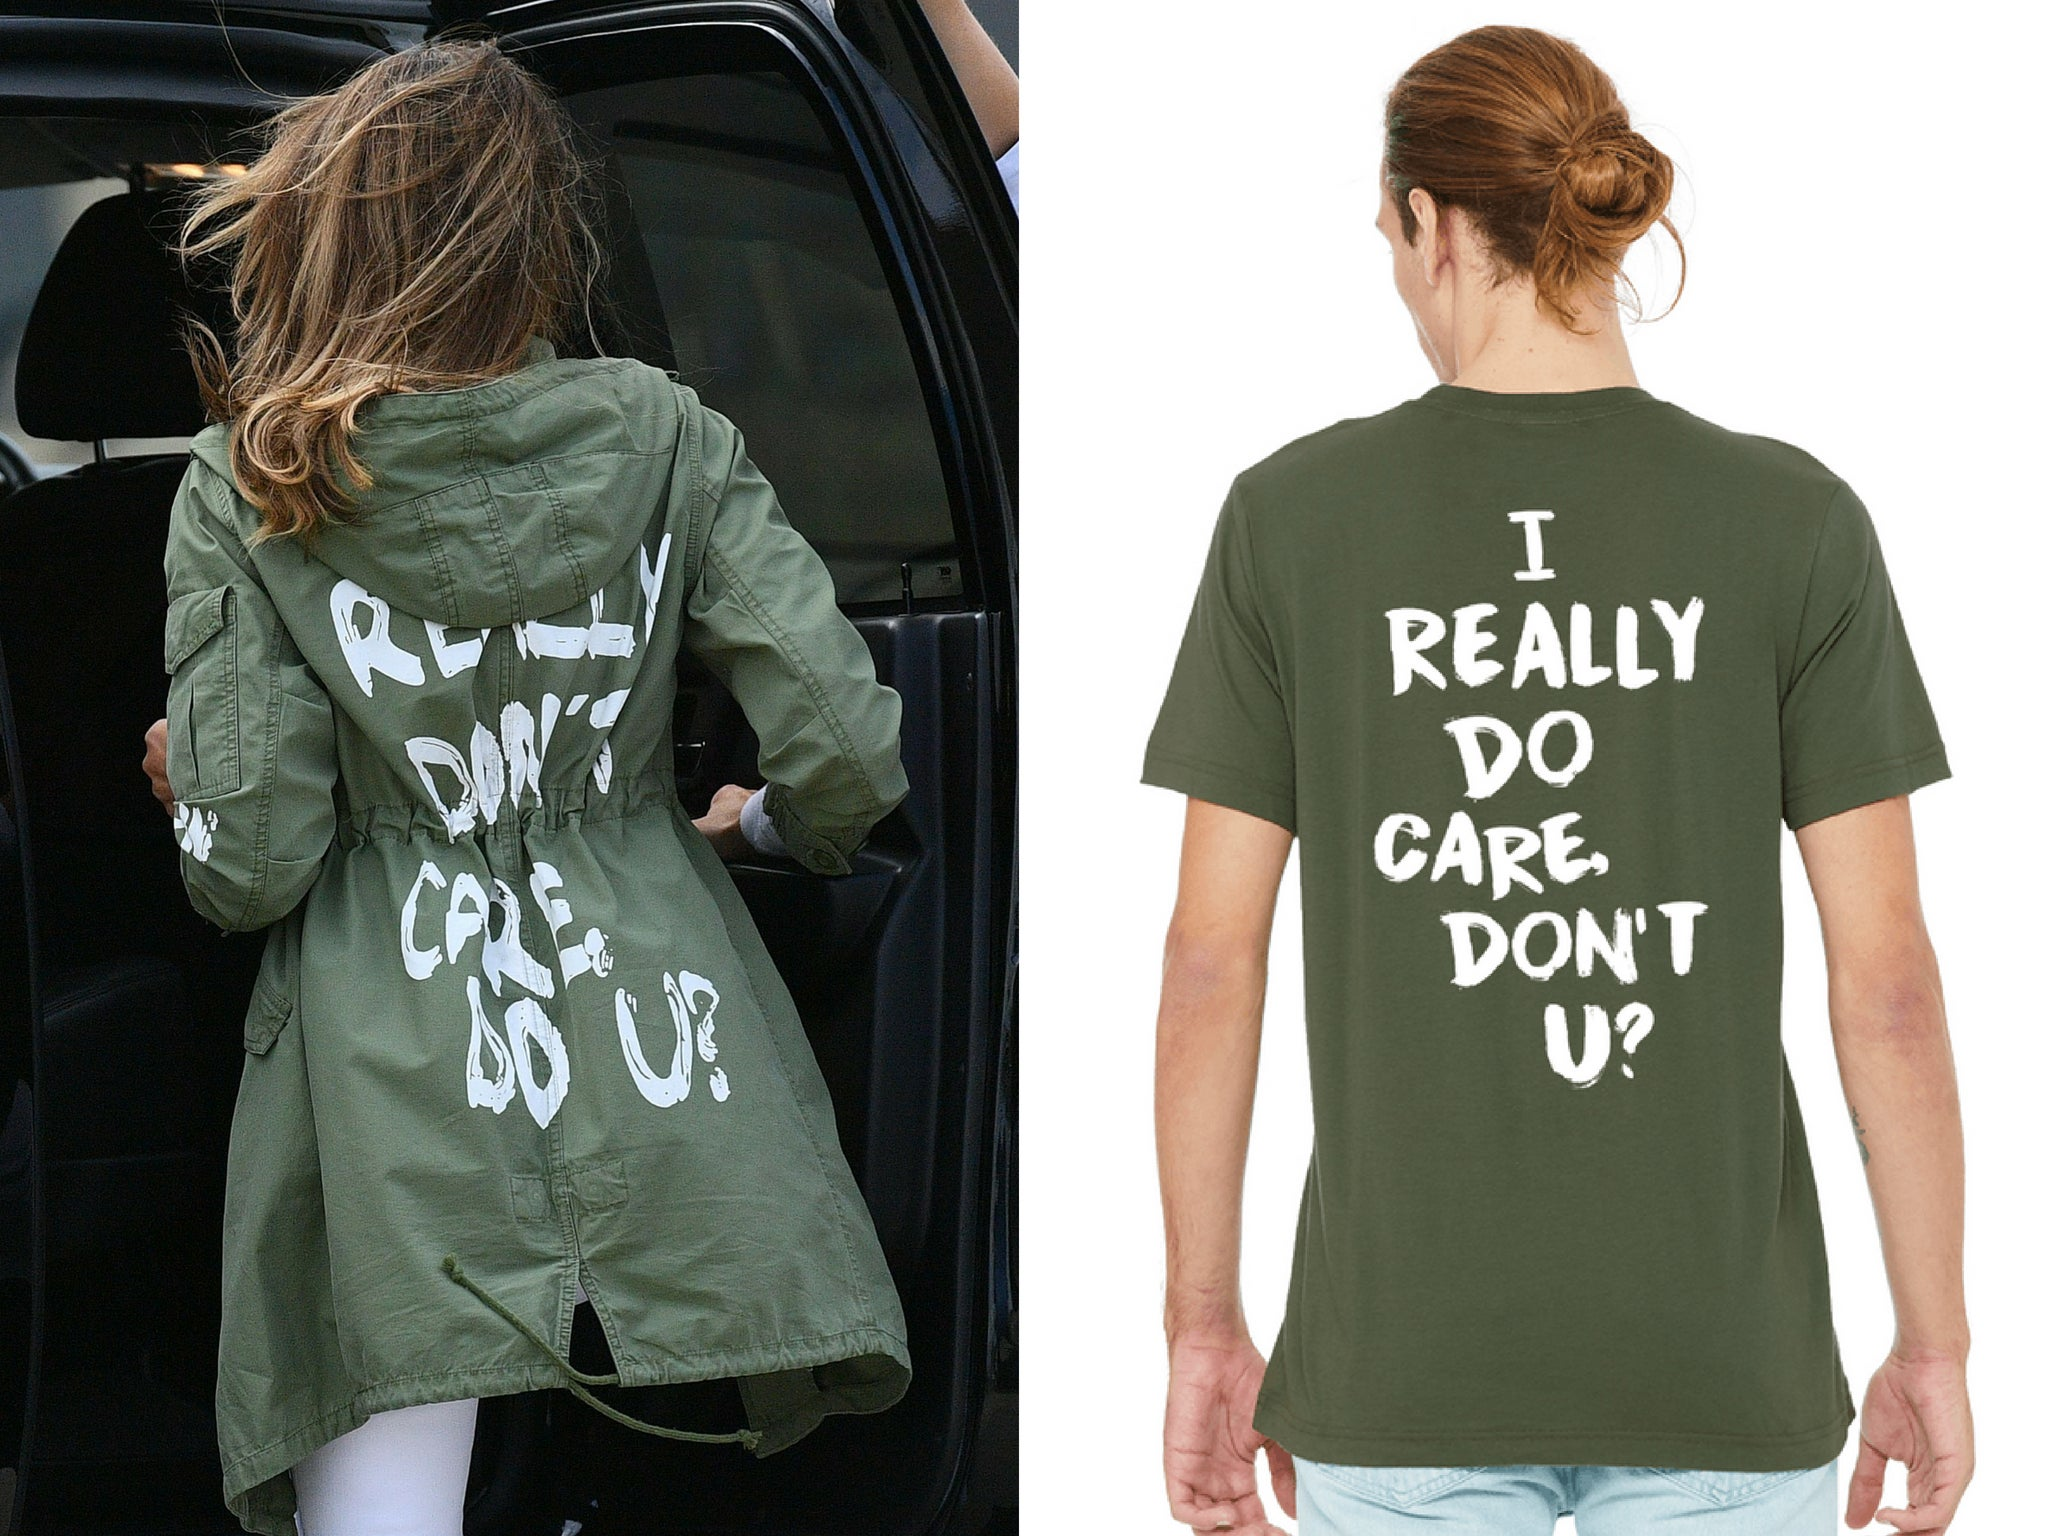 12da7dd6 After Melania Trump's jacket, people are buying 'I really do care' T-shirts  to raise money for immigrant charity | The Independent